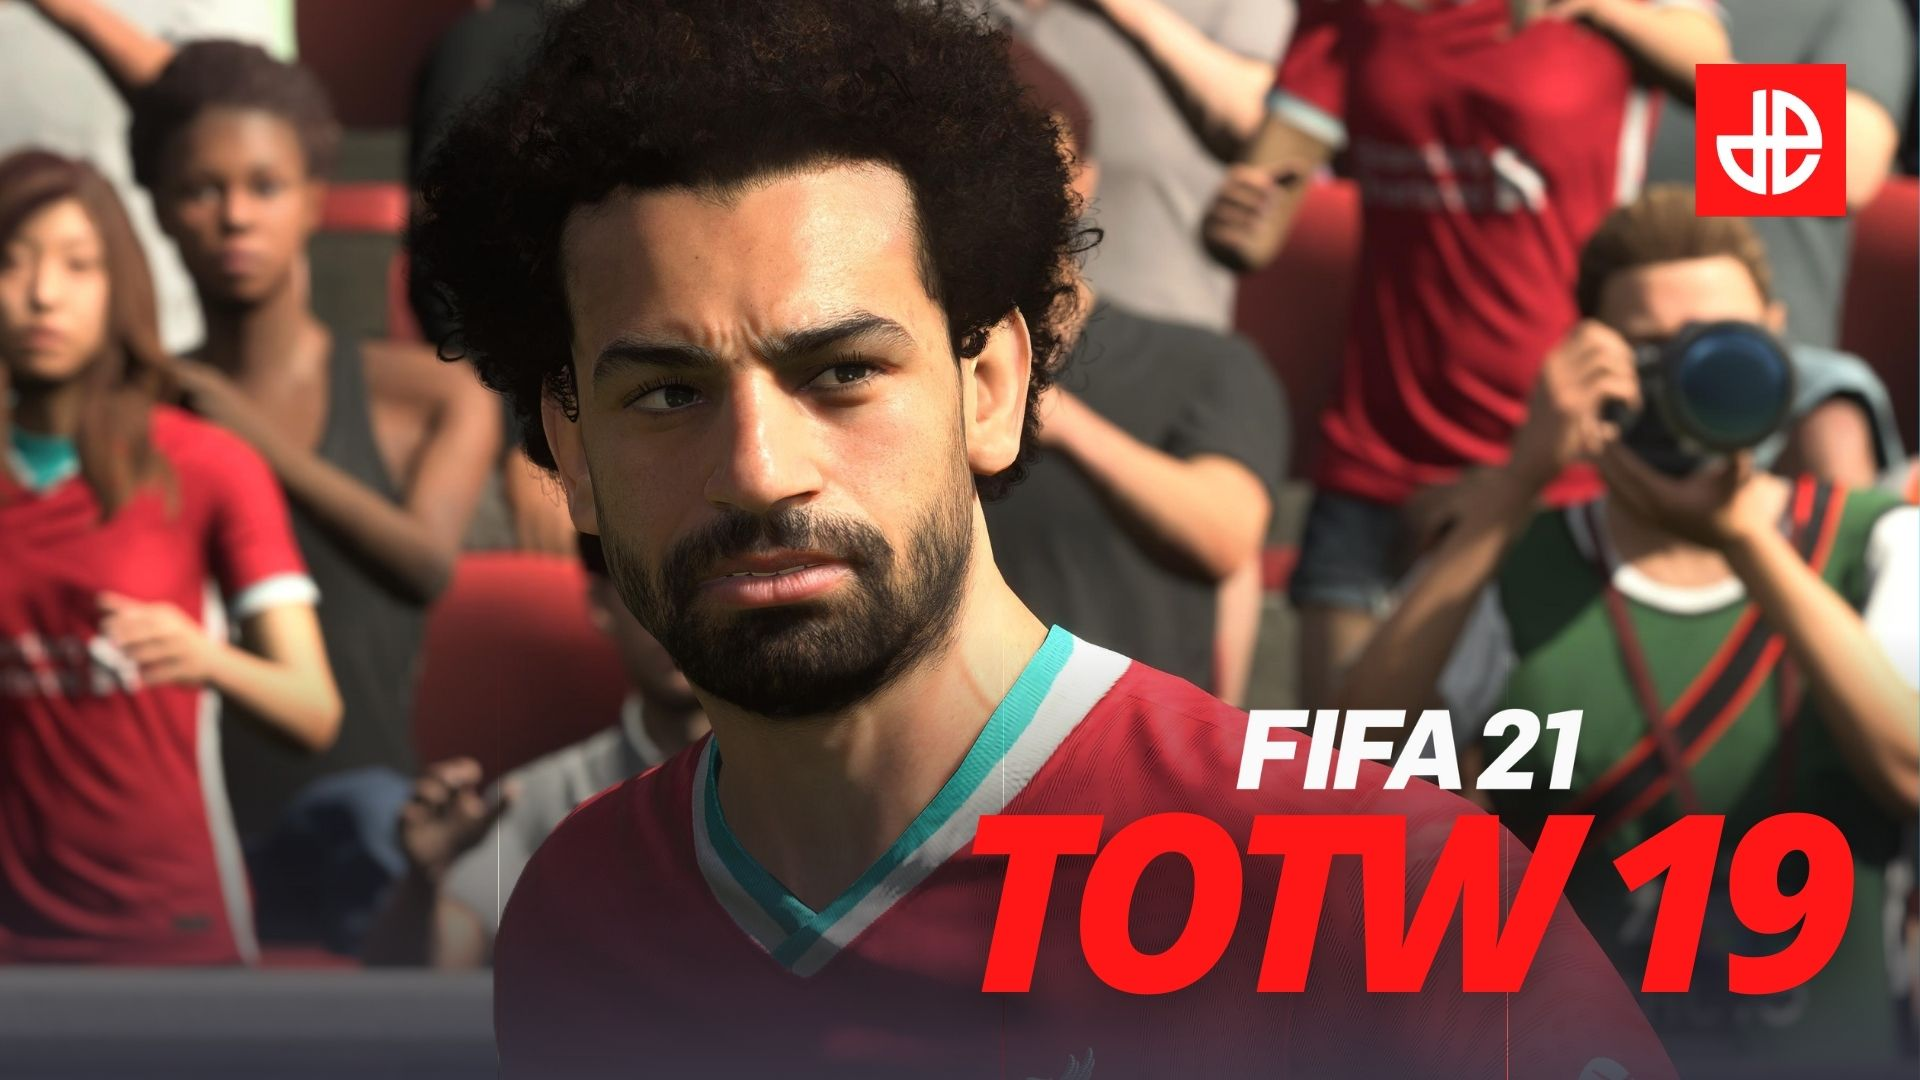 Mohamed Salah playing for Liverpool in FIFA 21 Team of the Week TOTW 19.